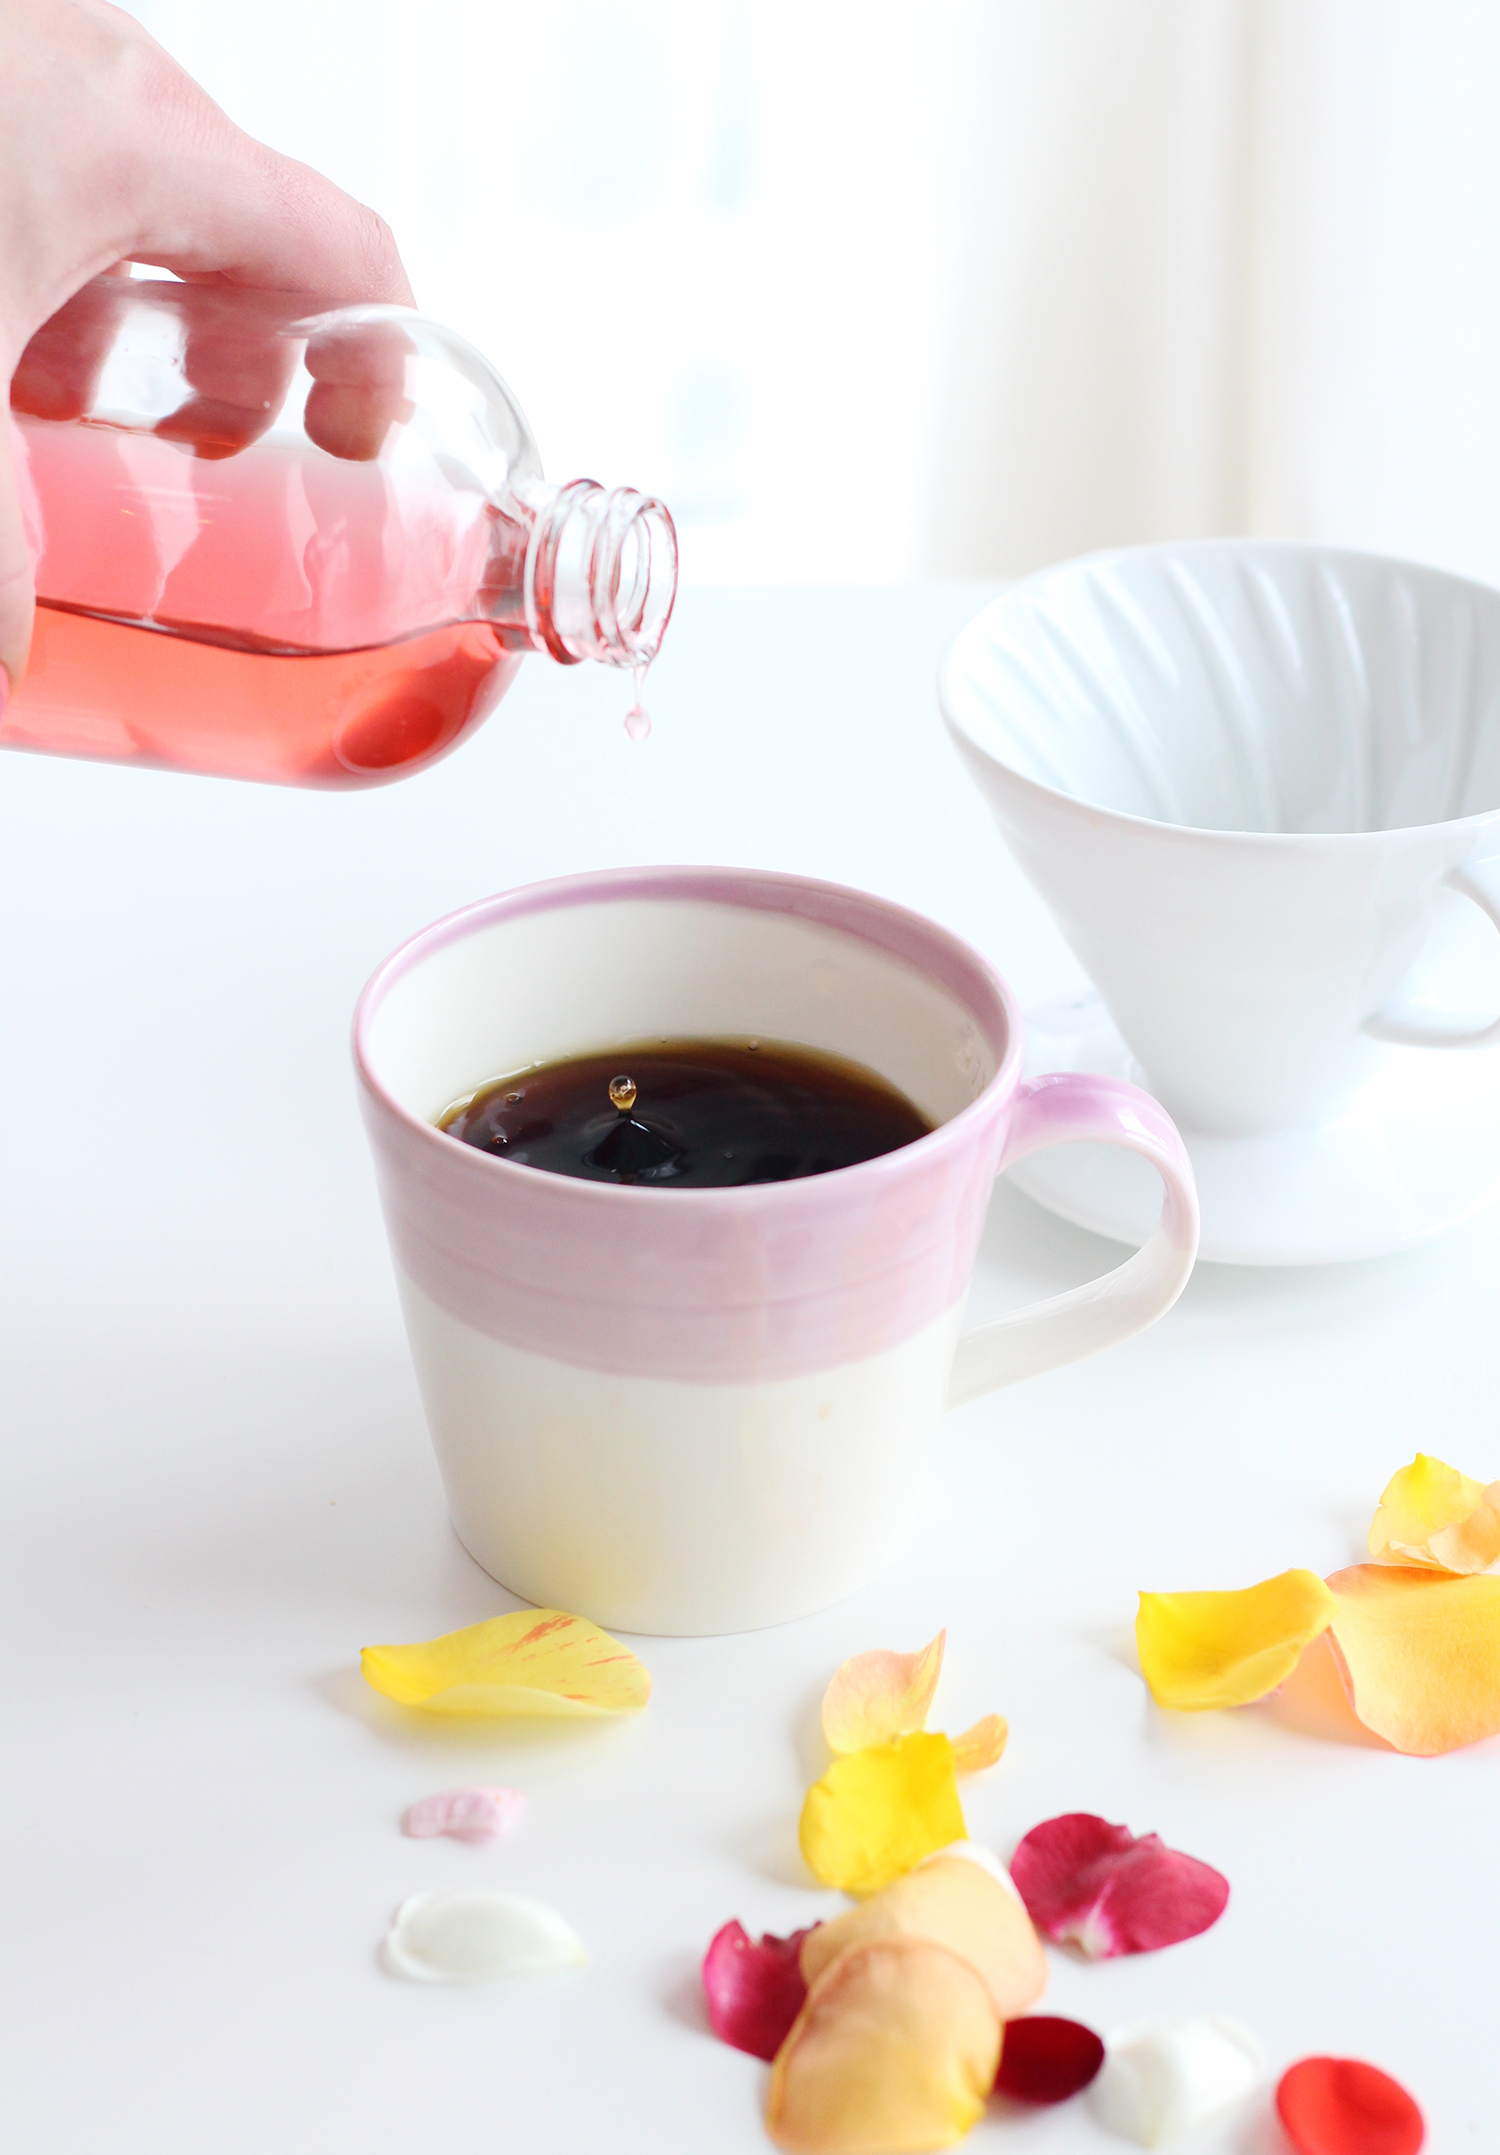 Homemade rose simple syrup is perfect for adding to coffee, tea or cocktails